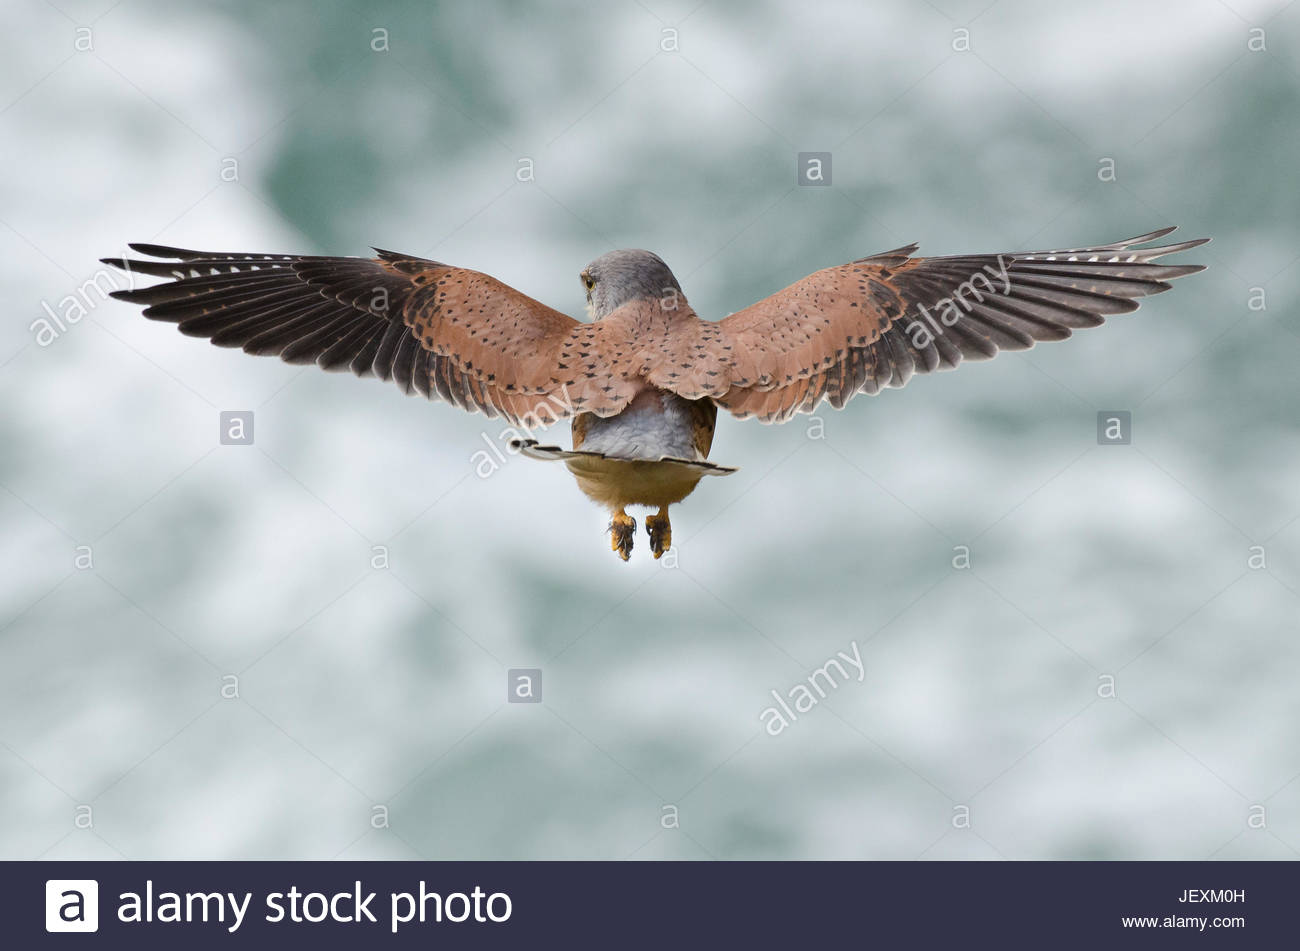 An Eurasian kestrel, Falco tinnunculus, hovering while hunting rodents on coastal cliffs. - Stock Image